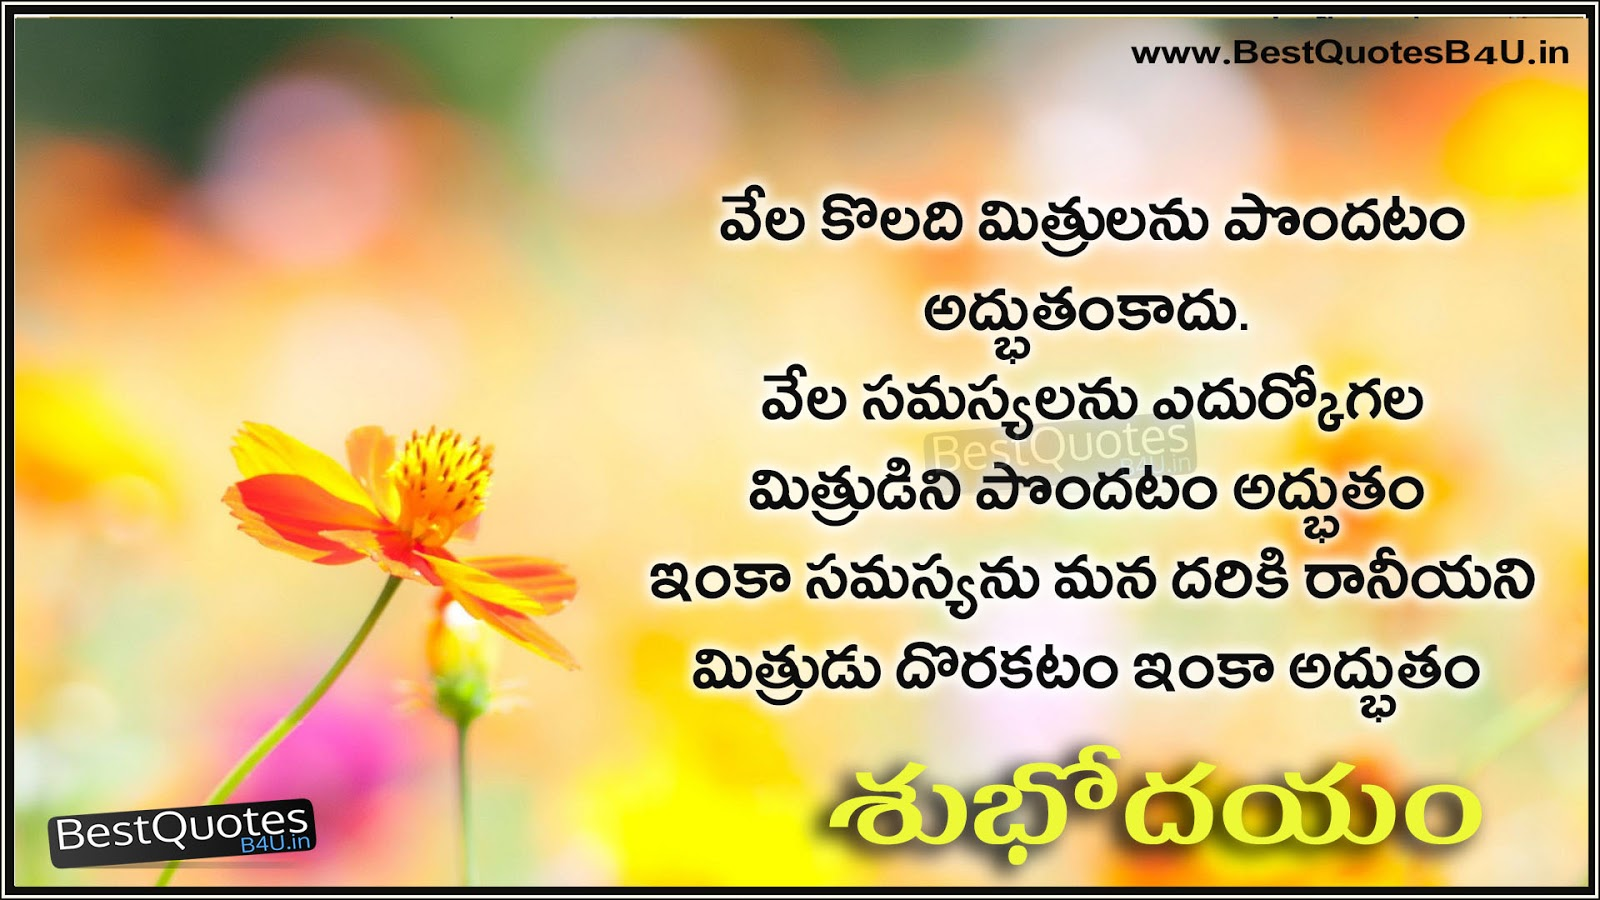 Nice Quotes About Friendship Good Morning Greetings With Telugu Friendship Quotes  Like Share